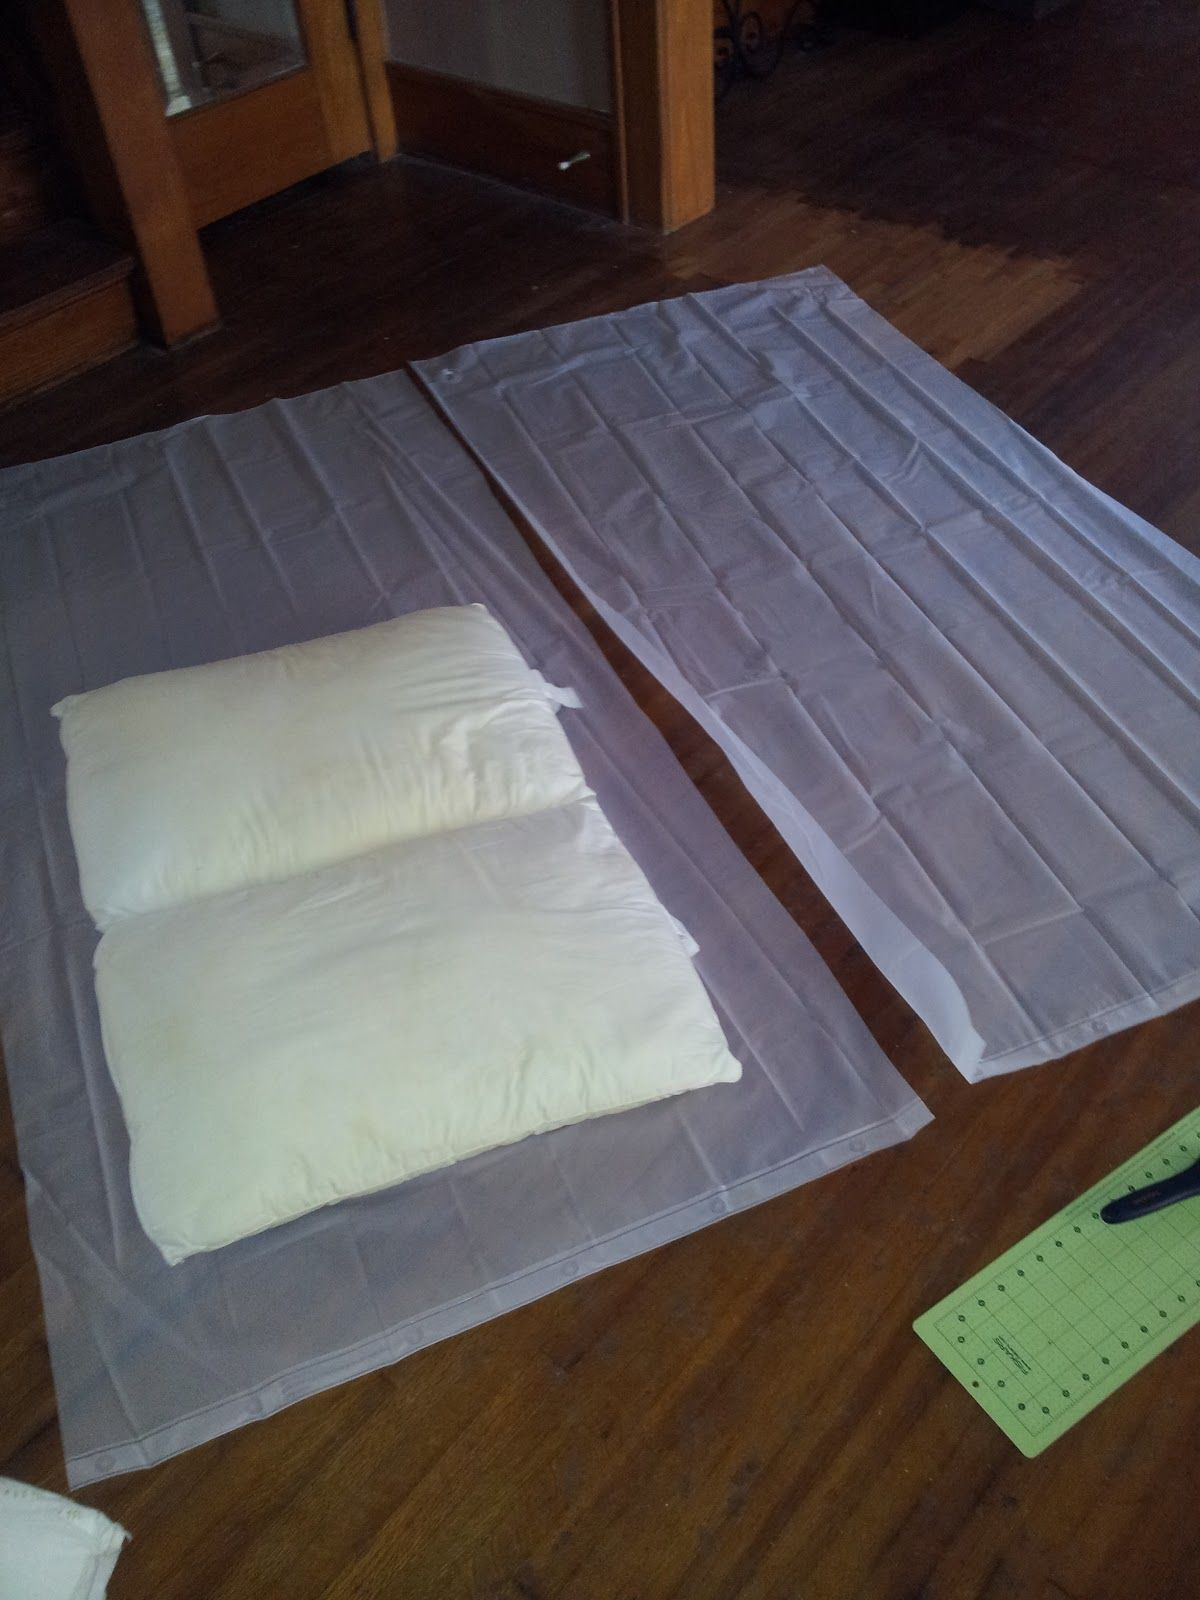 Use a shower curtain and tape to waterproof the inside of homemade ...